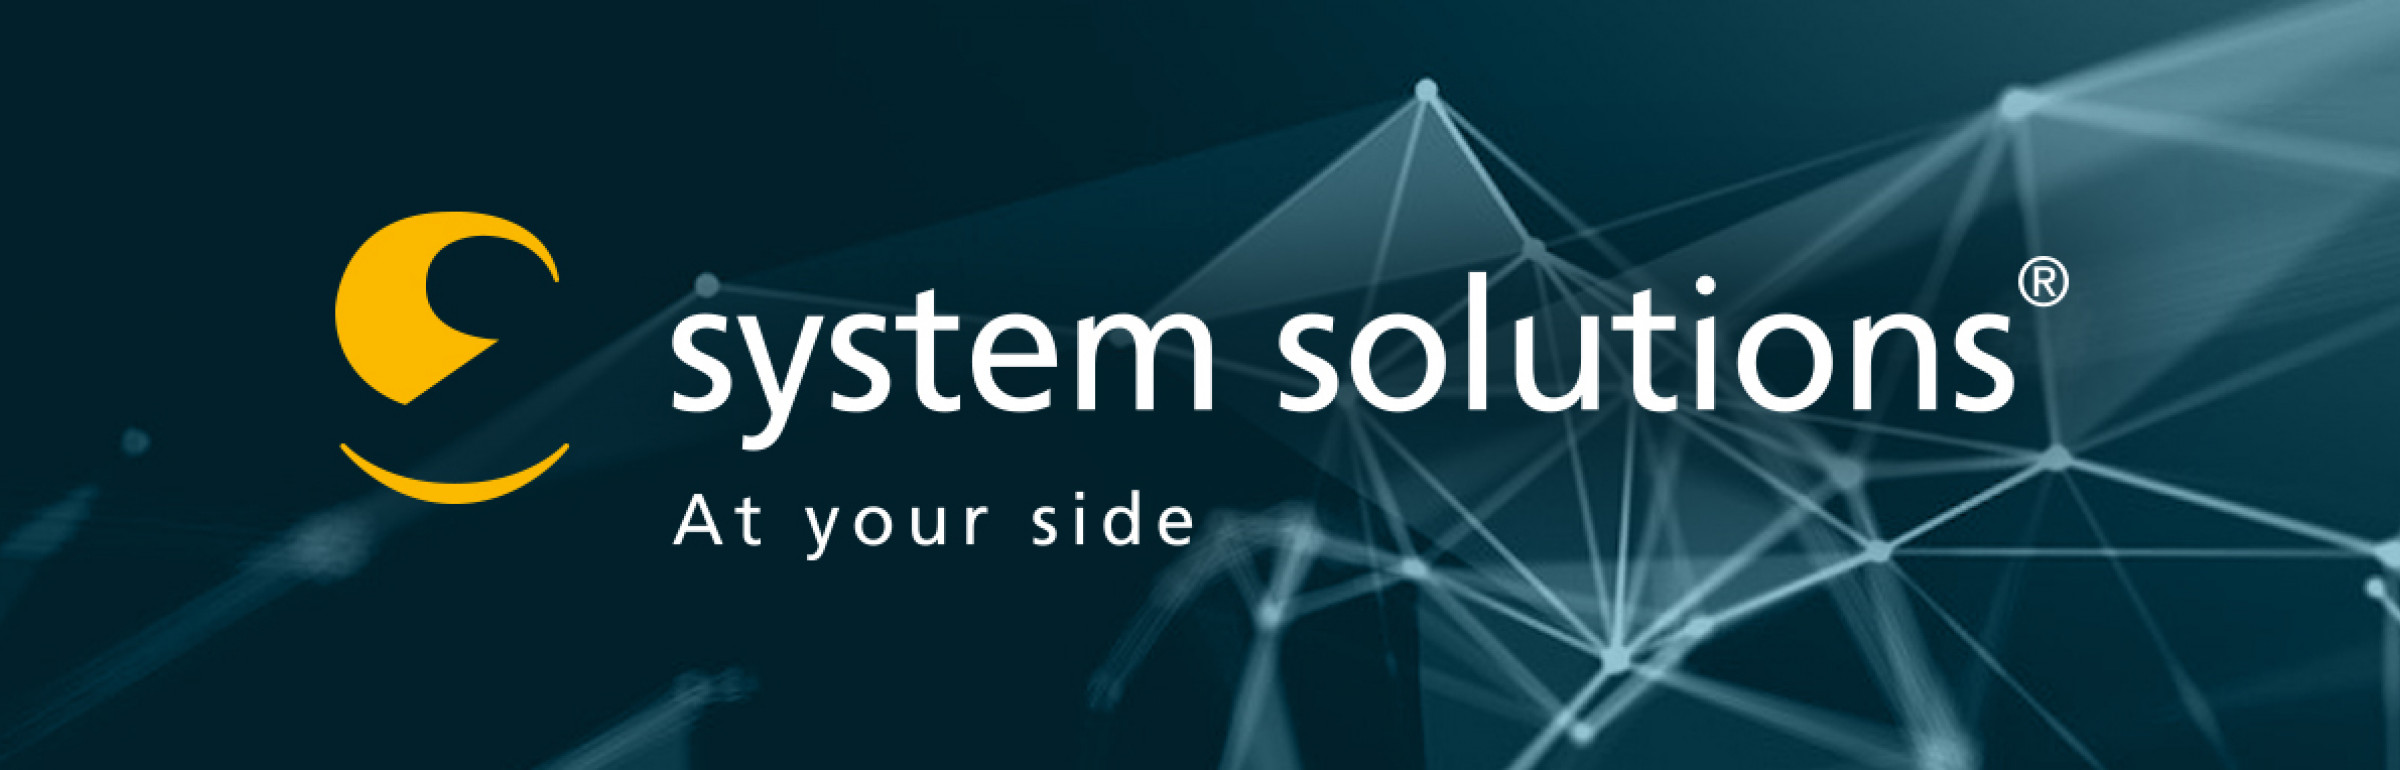 Banner System Solutions Group